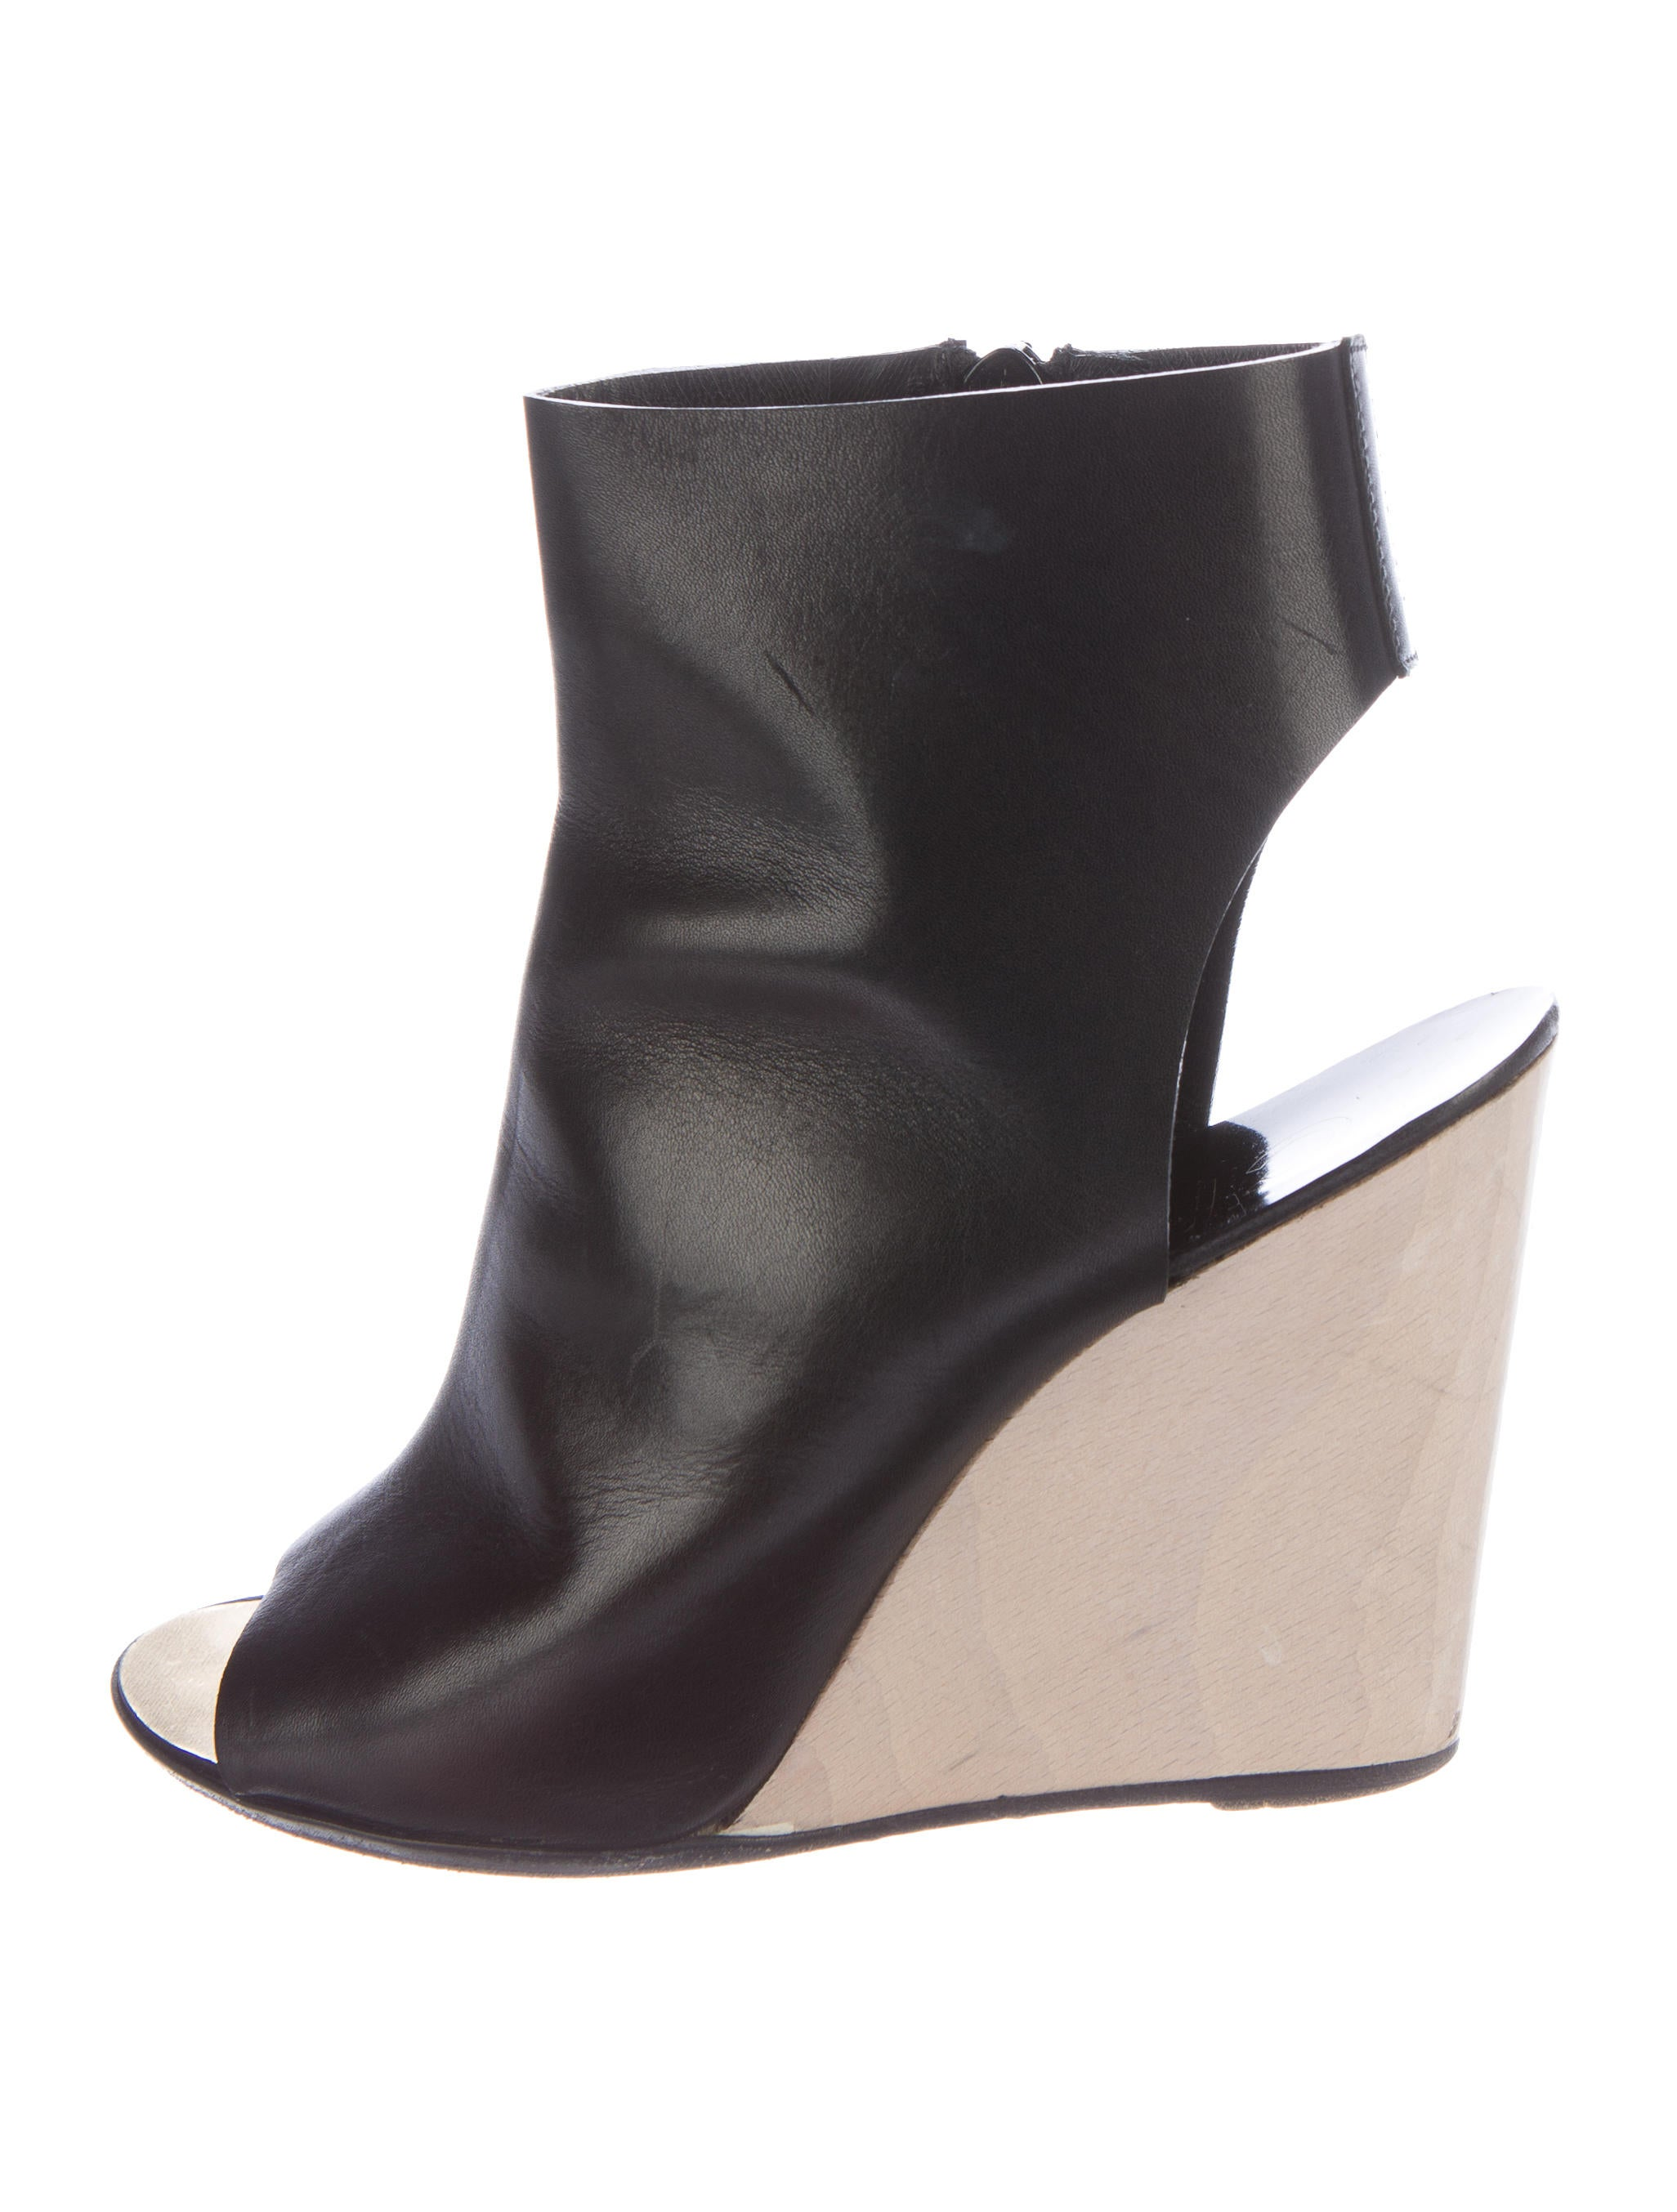 chanel open toe wedge ankle boots shoes cha134472